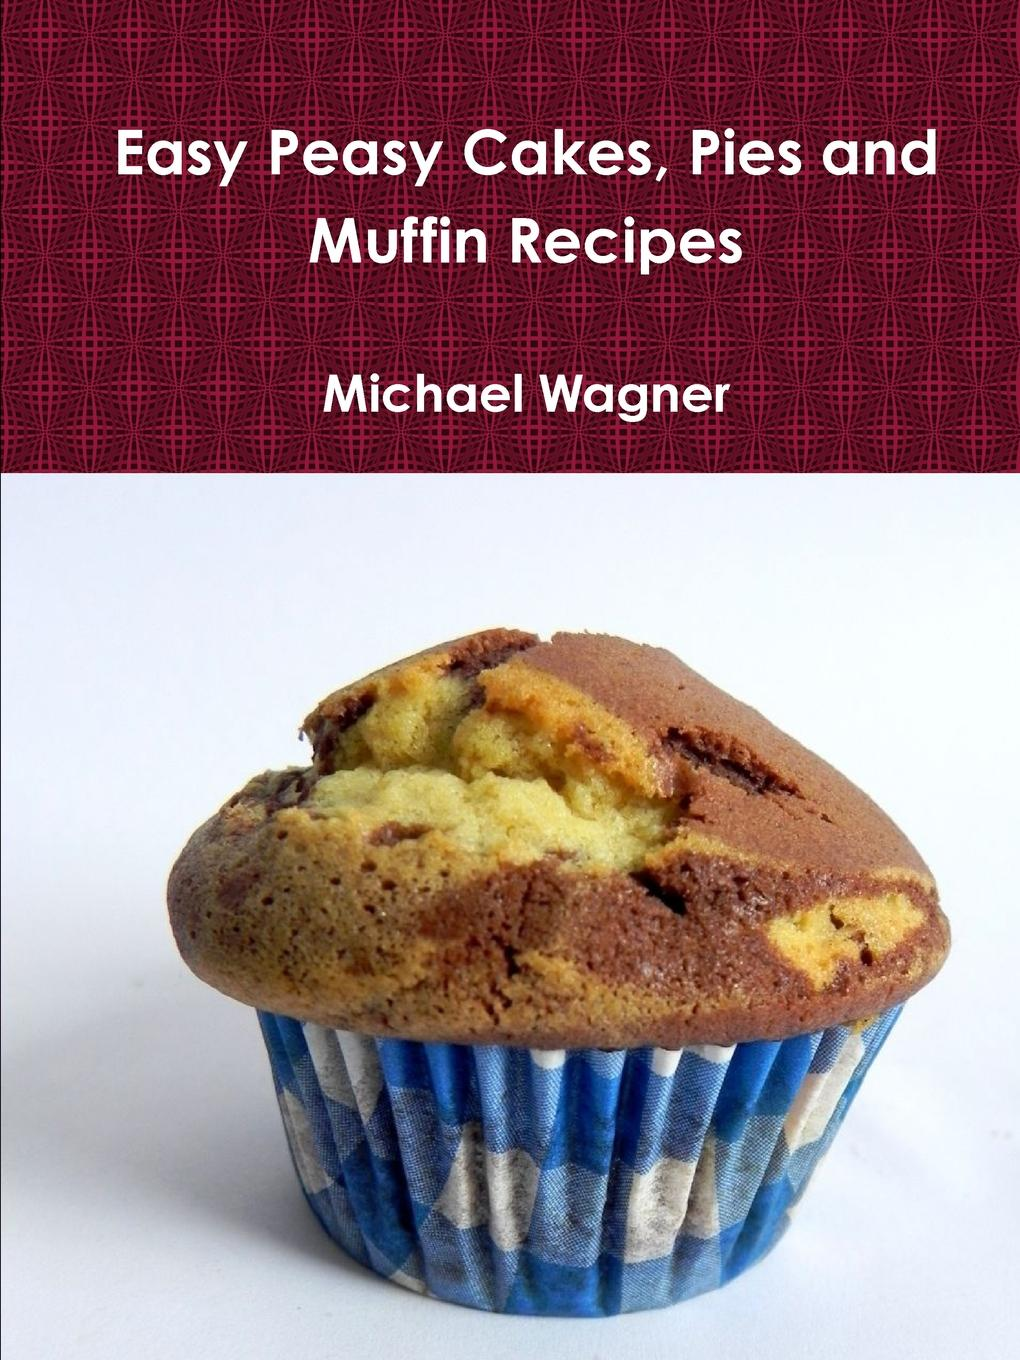 цена на Michael Wagner Easy Peasy Cakes, Pies and Muffin Recipes